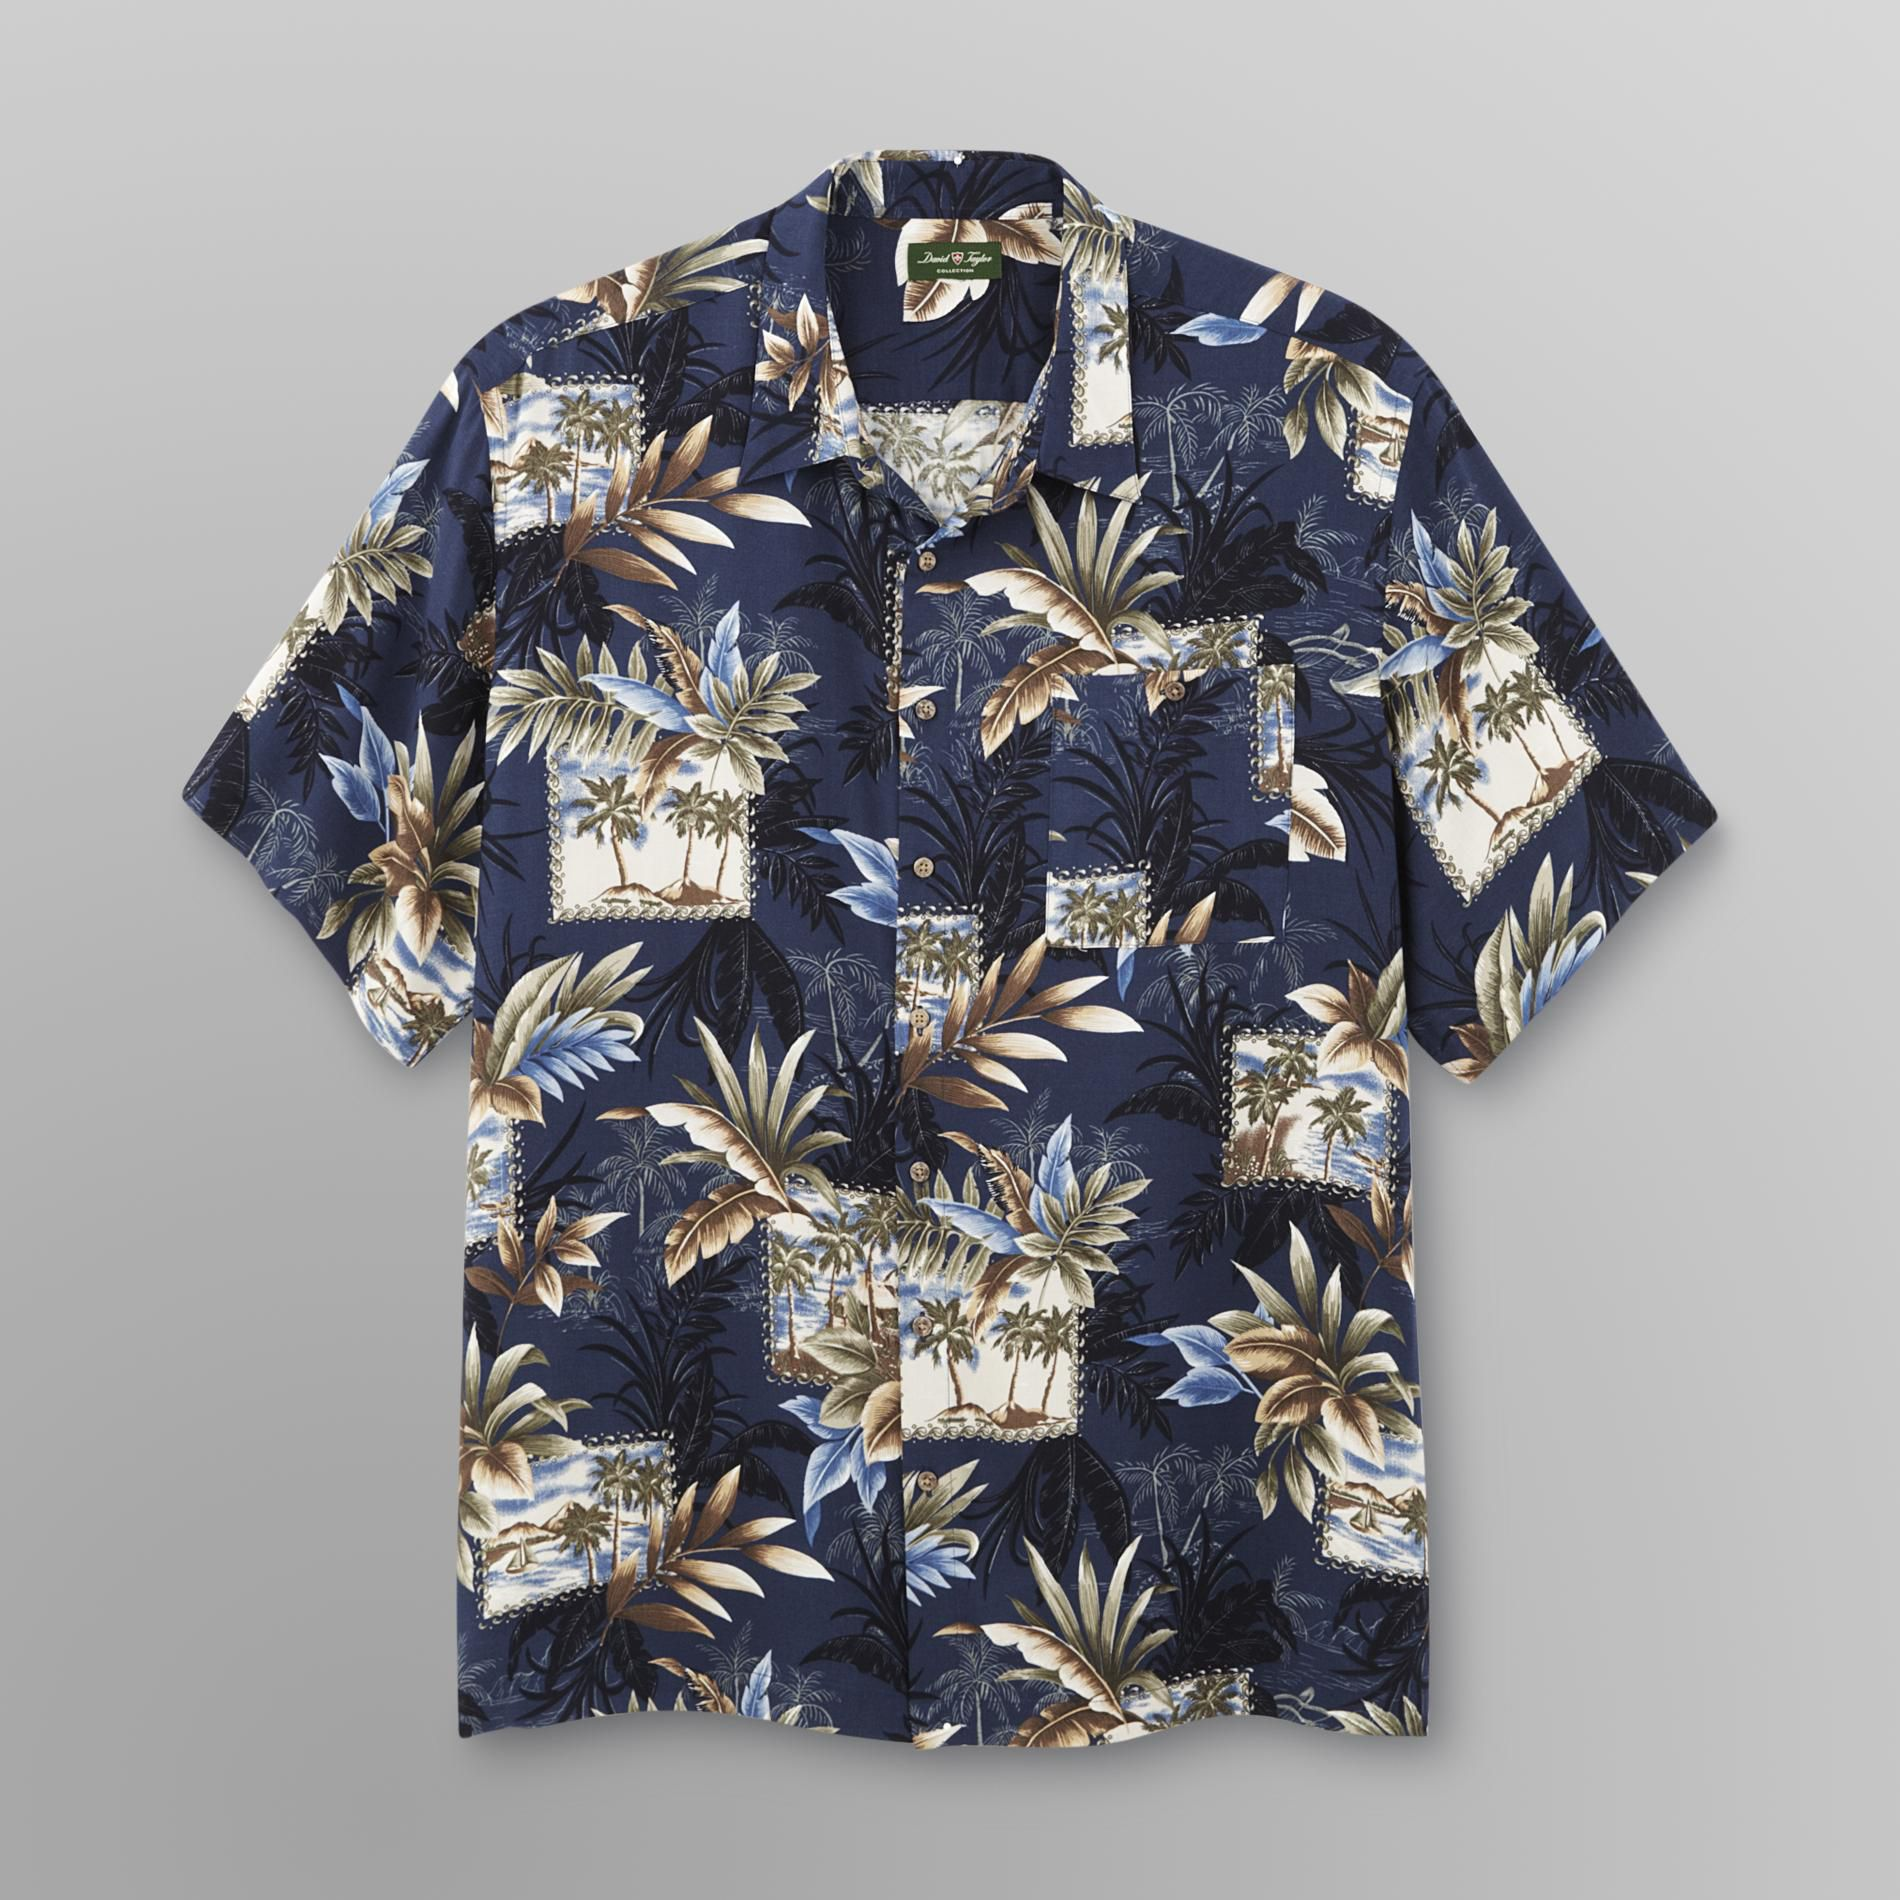 David Taylor Men's Camp Shirt - Floral Print at Kmart.com